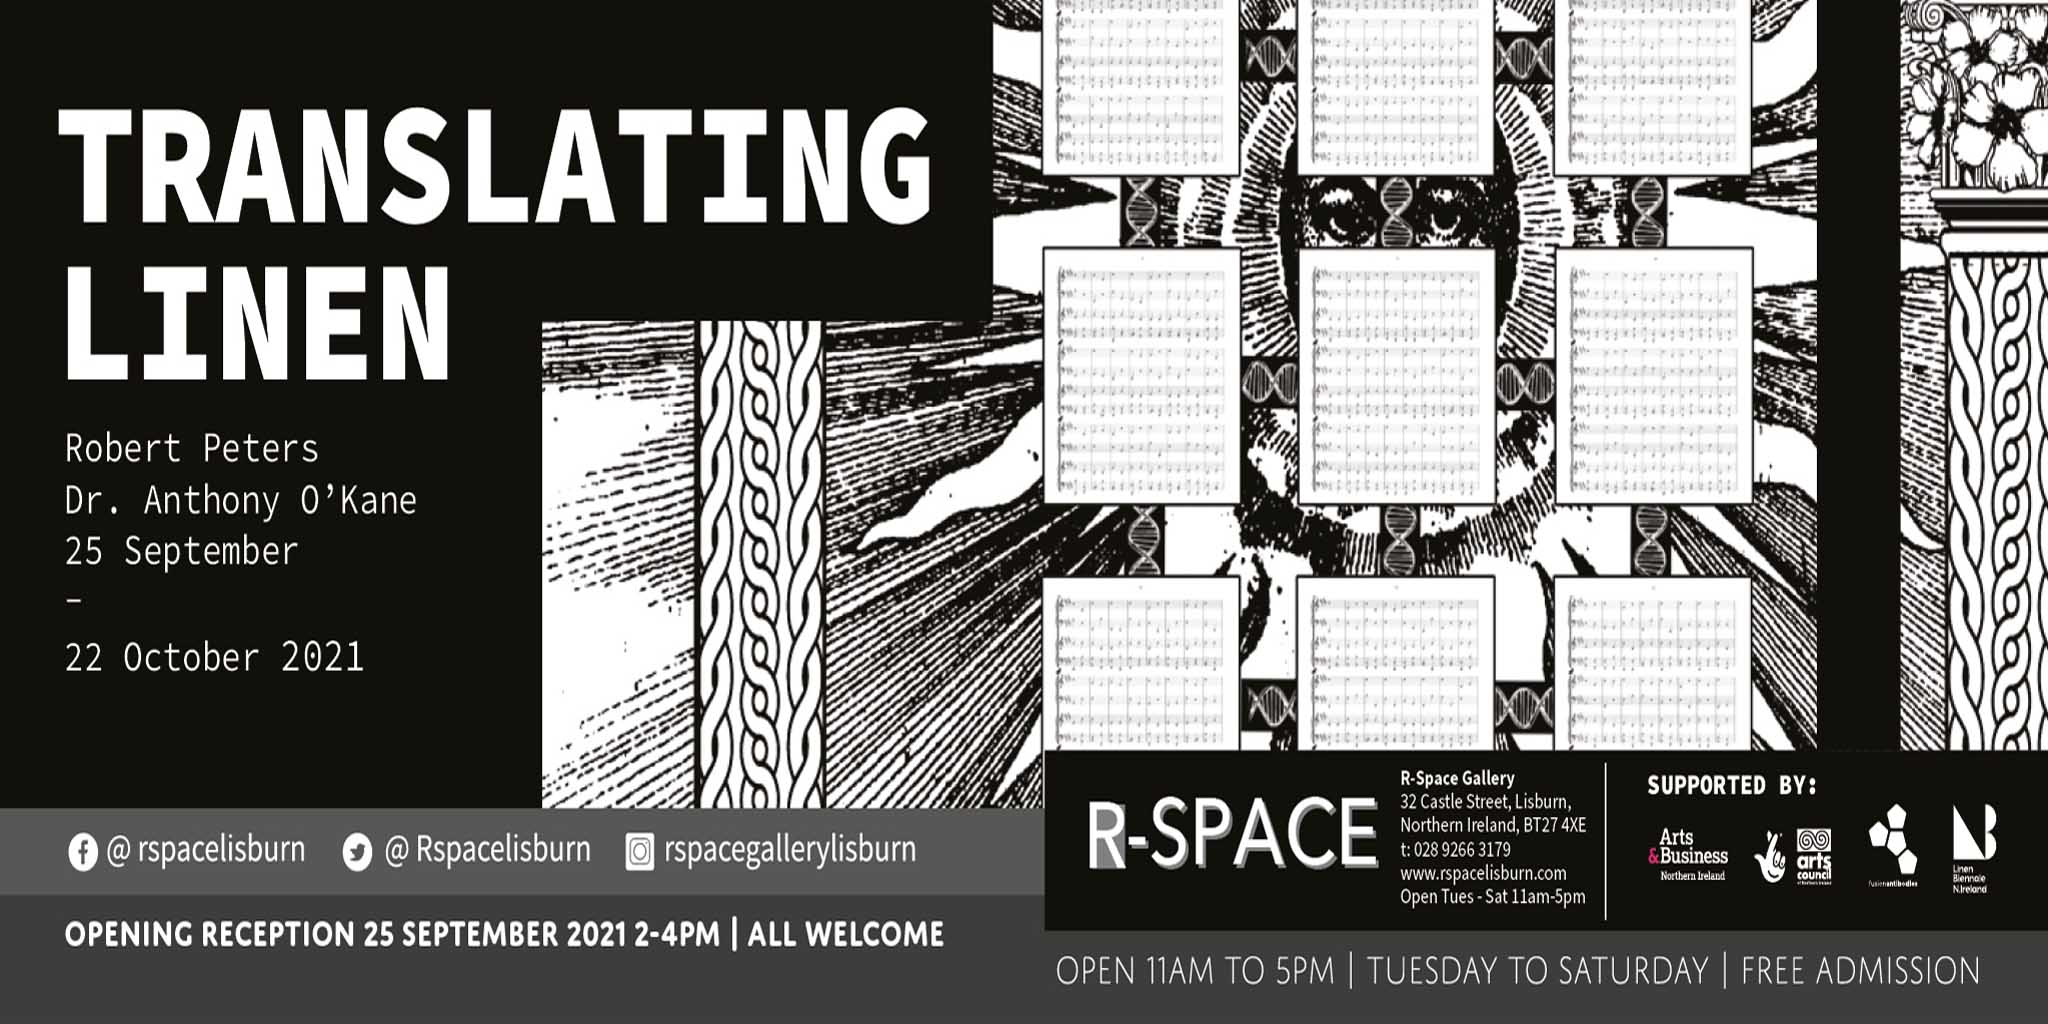 Translating Linen | Robert Peters and Dr Anthony O'Kane at R Space Gallery